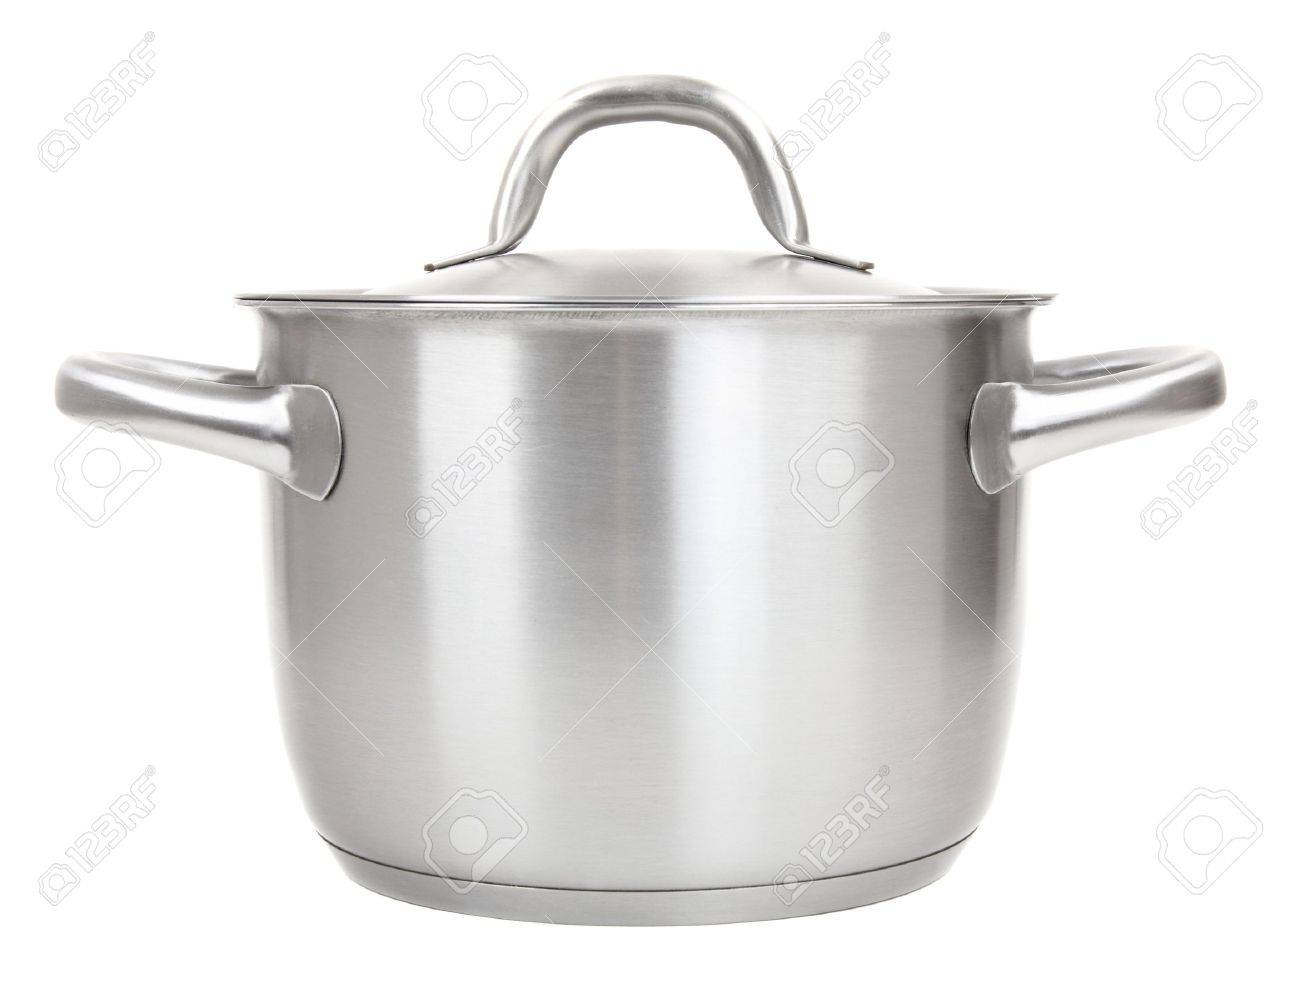 stainless pot isolated on white background Stock Photo - 8591303